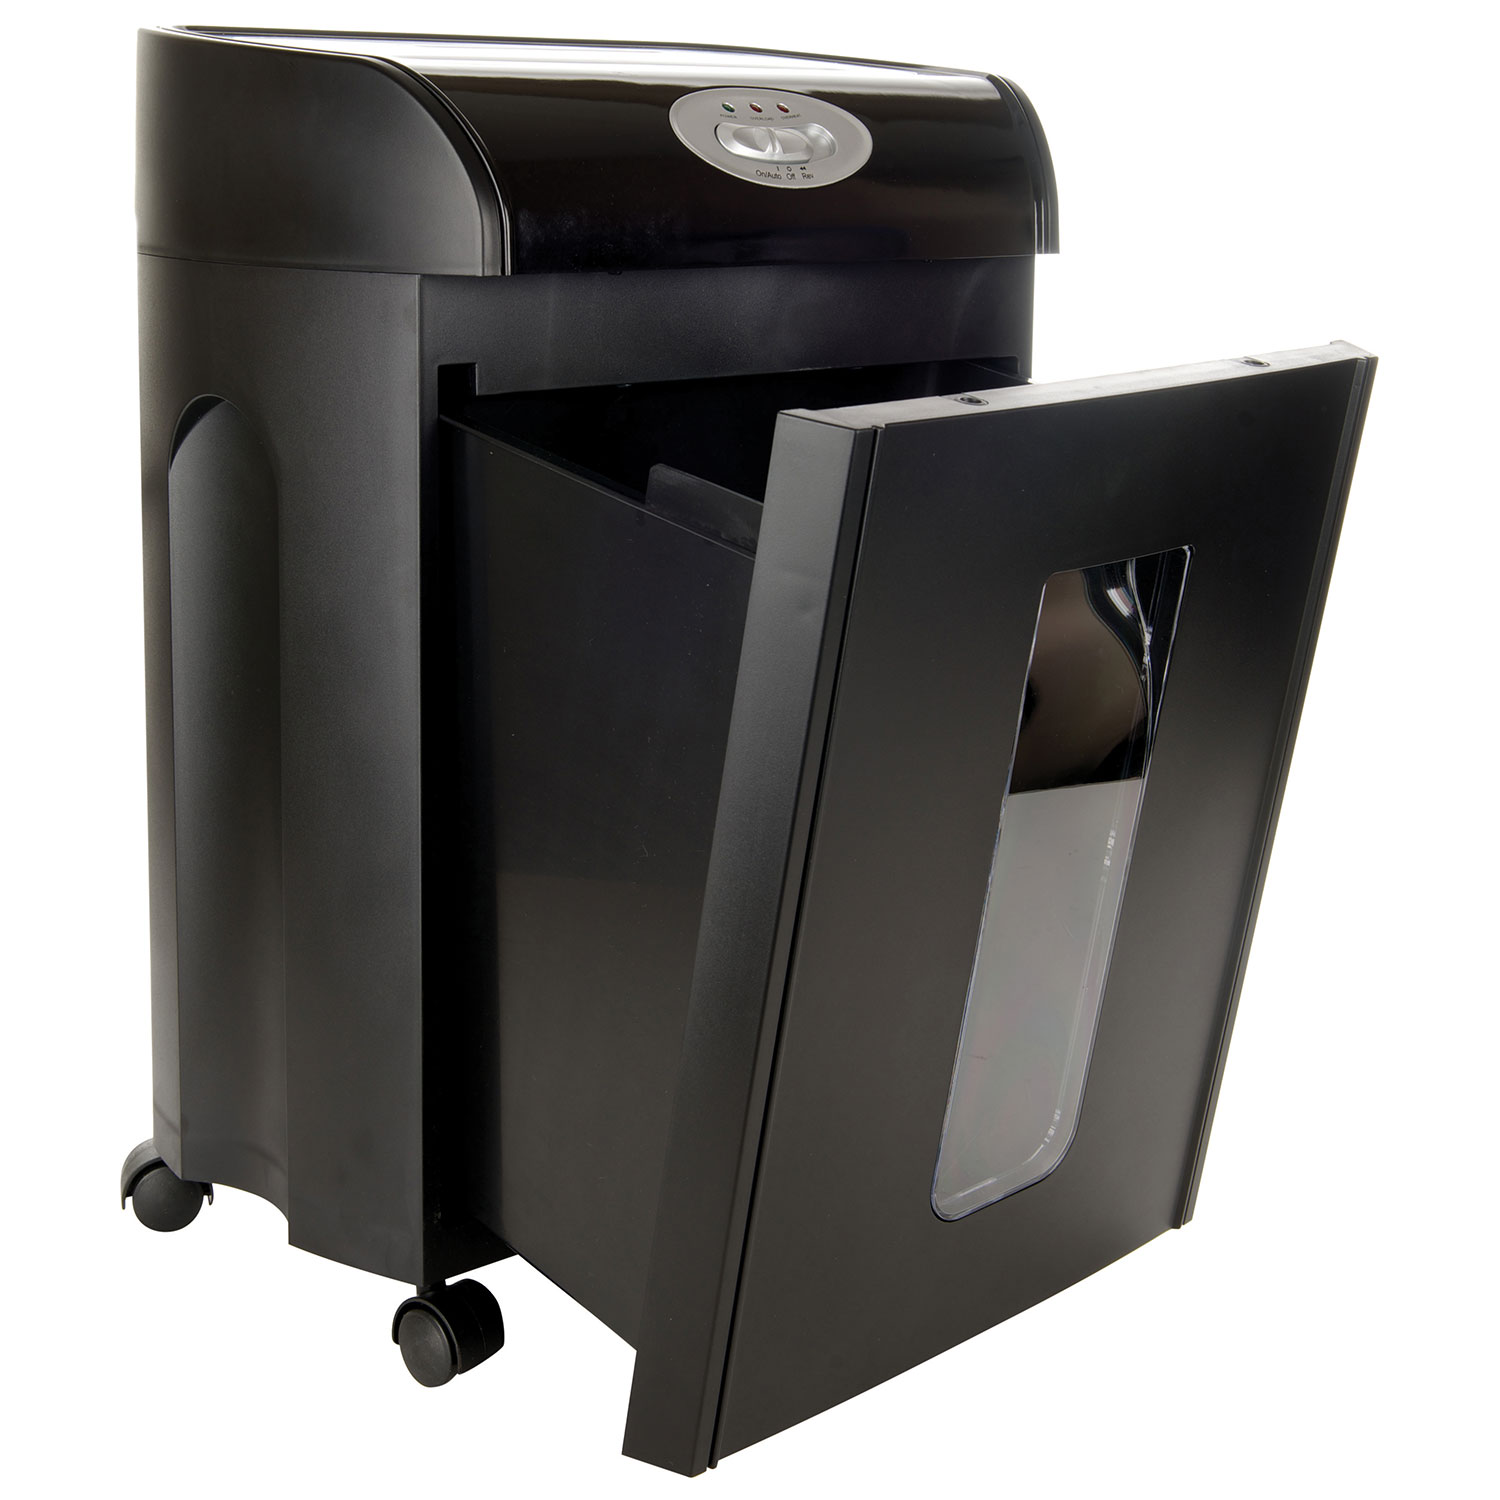 paper shredder best buy Online shopping from a great selection at office products store.